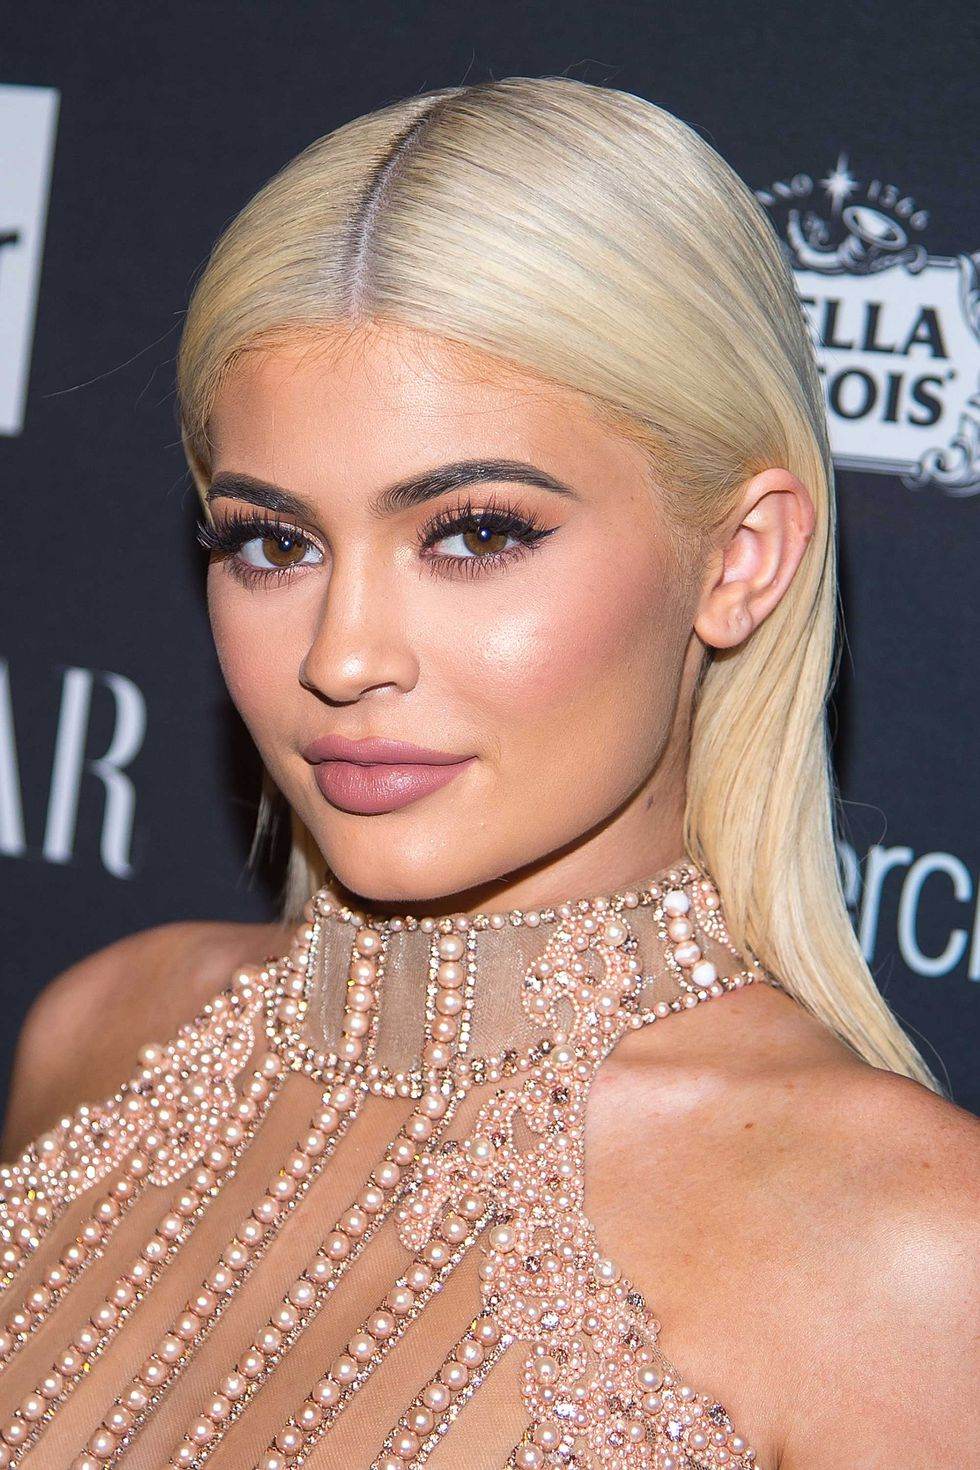 makeup-style-what-to-wear-christmas-day-dinner-holiday-outfits-winter-kyliejenner-pink-makeup-monochromatic-eyeshadow.jpg